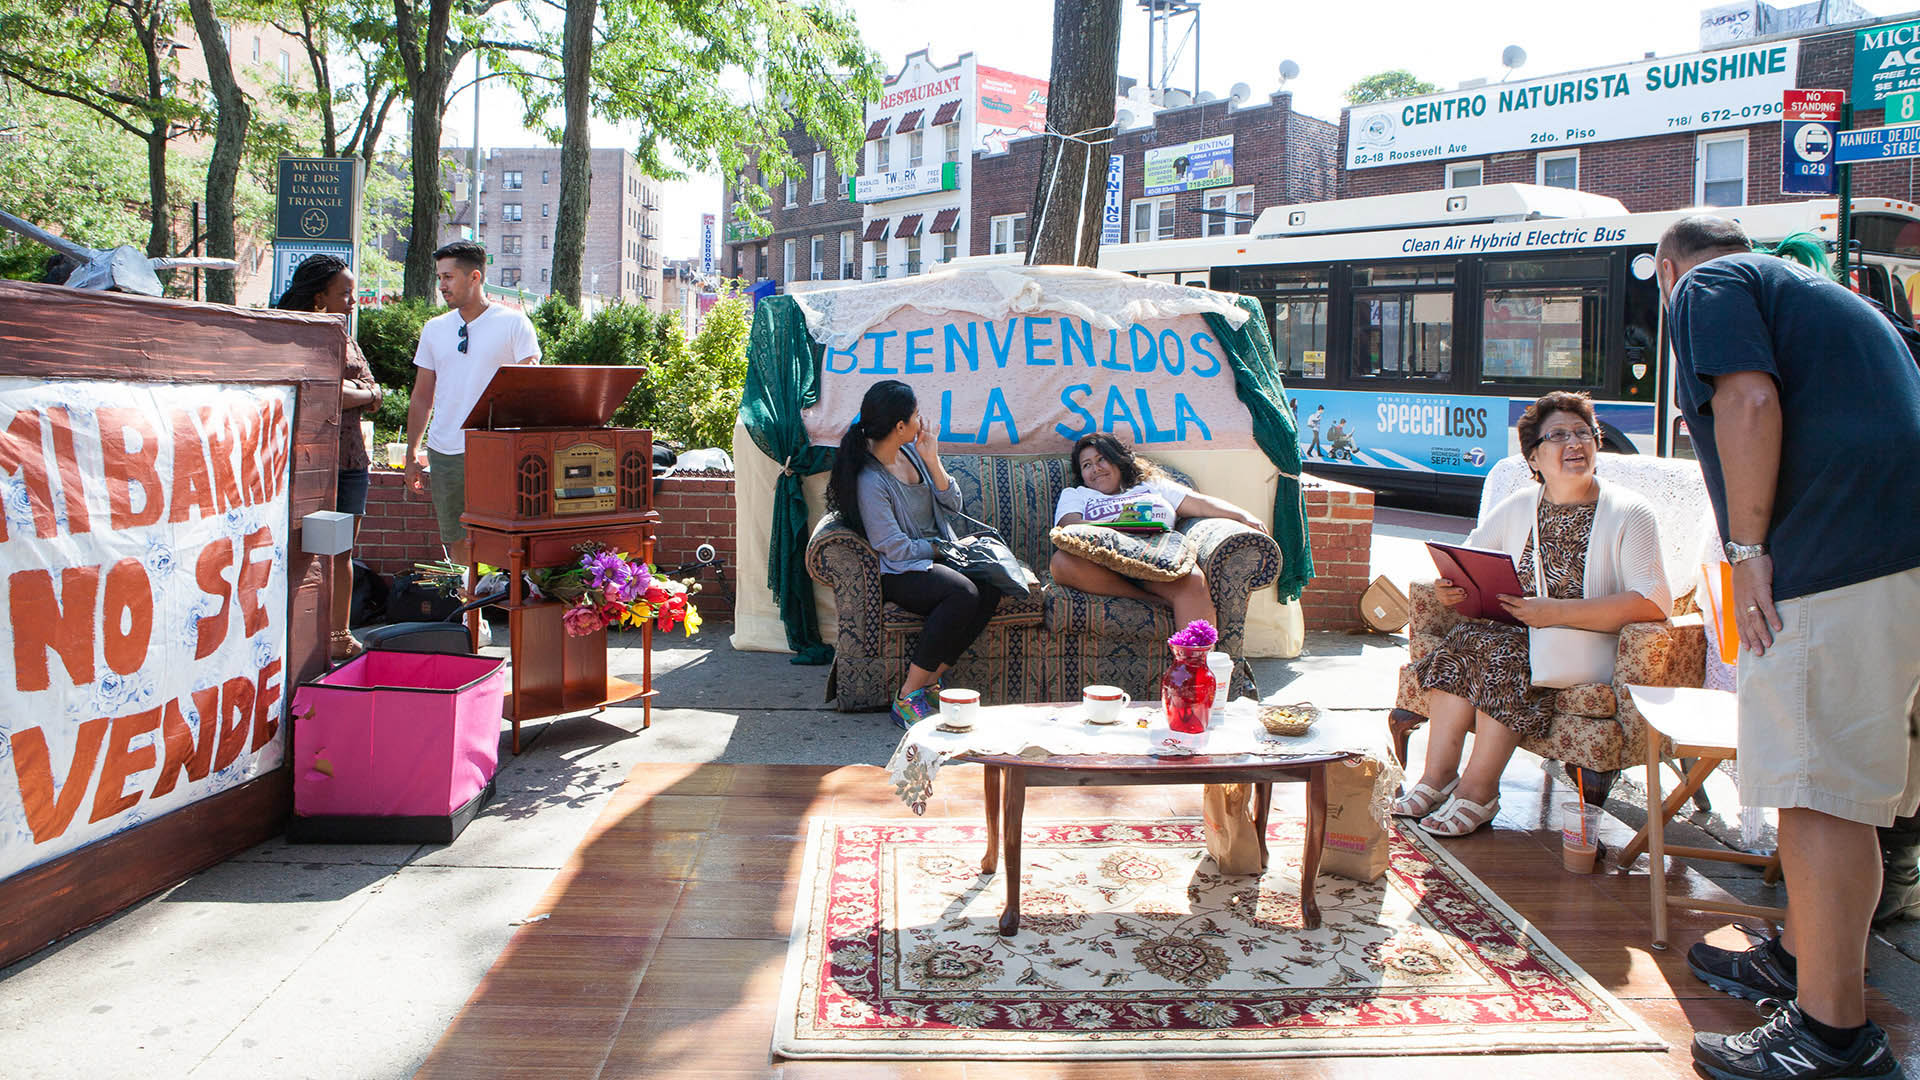 A Living Room on Roosevelt / A Collaborative Project between Ro Garrido and Queens Neighborhoods United / A Commissioned Project by the Laundromat Project